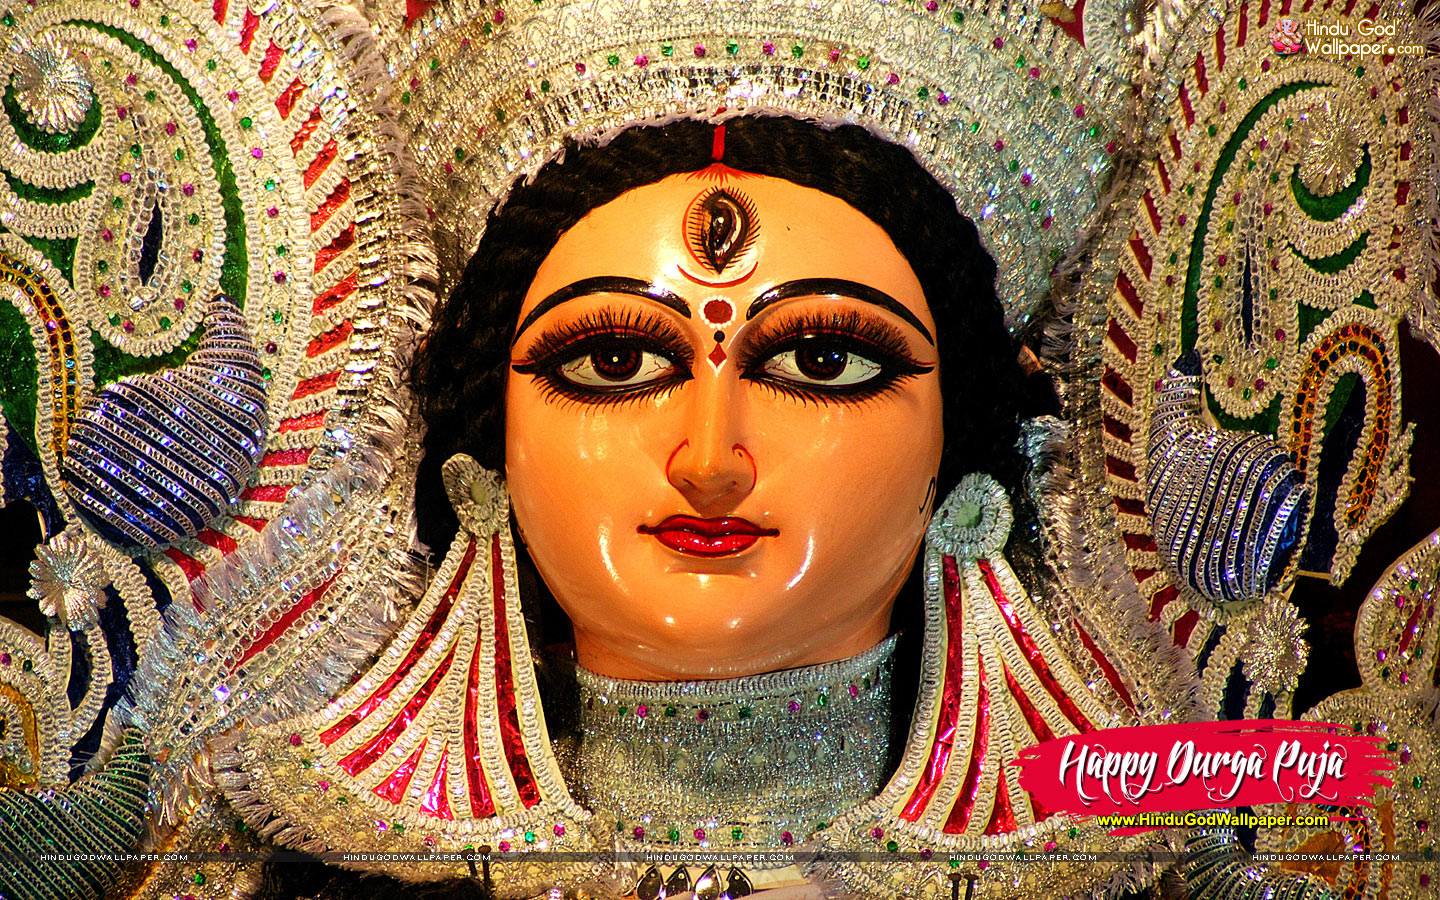 Navratri hd photos & maa durga images for free download online.